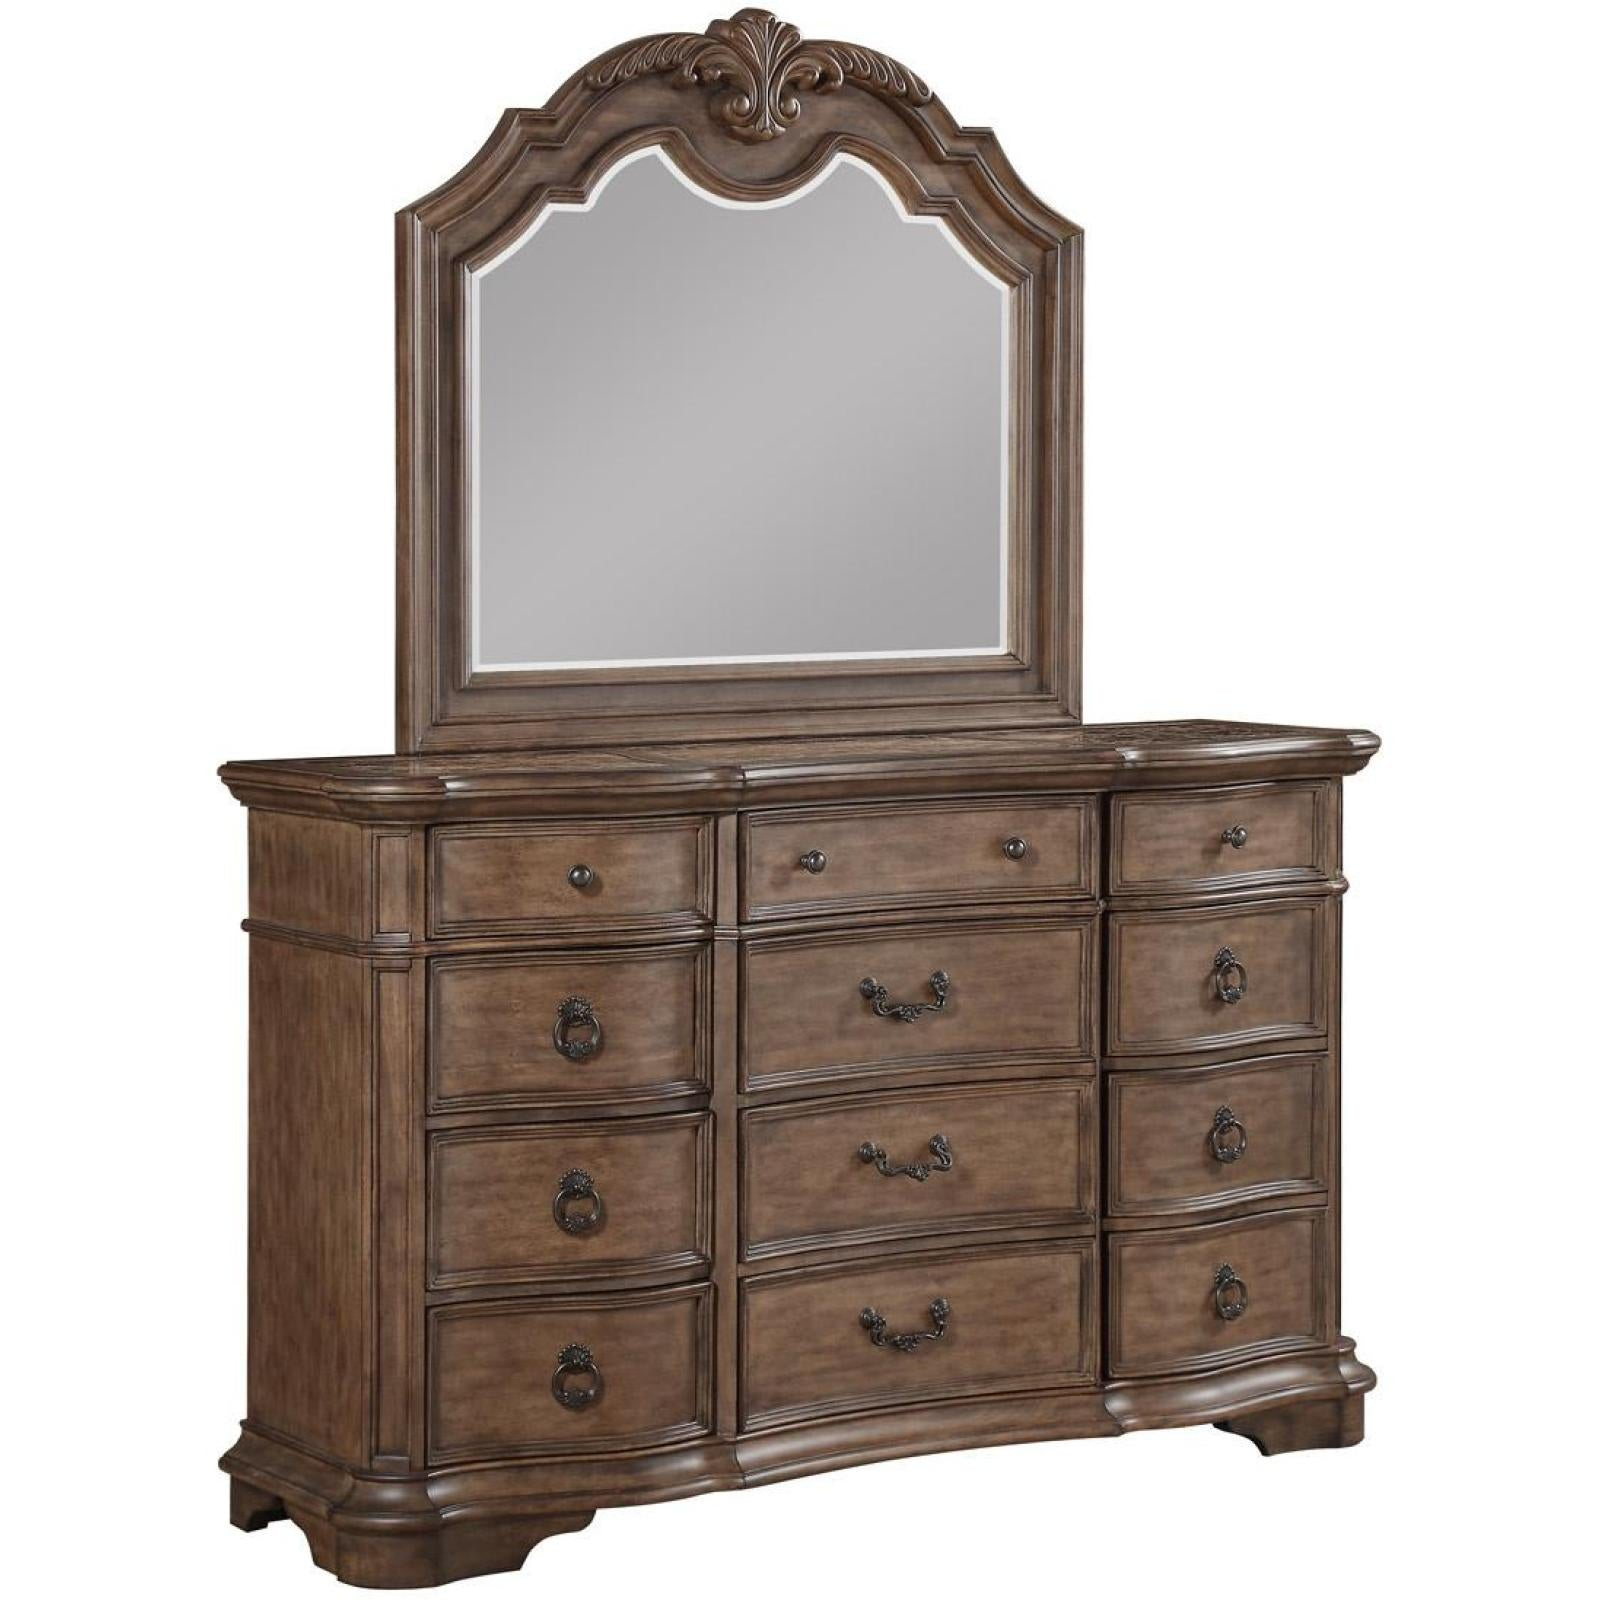 Tulsa Dresser Mirror Adams Furniture